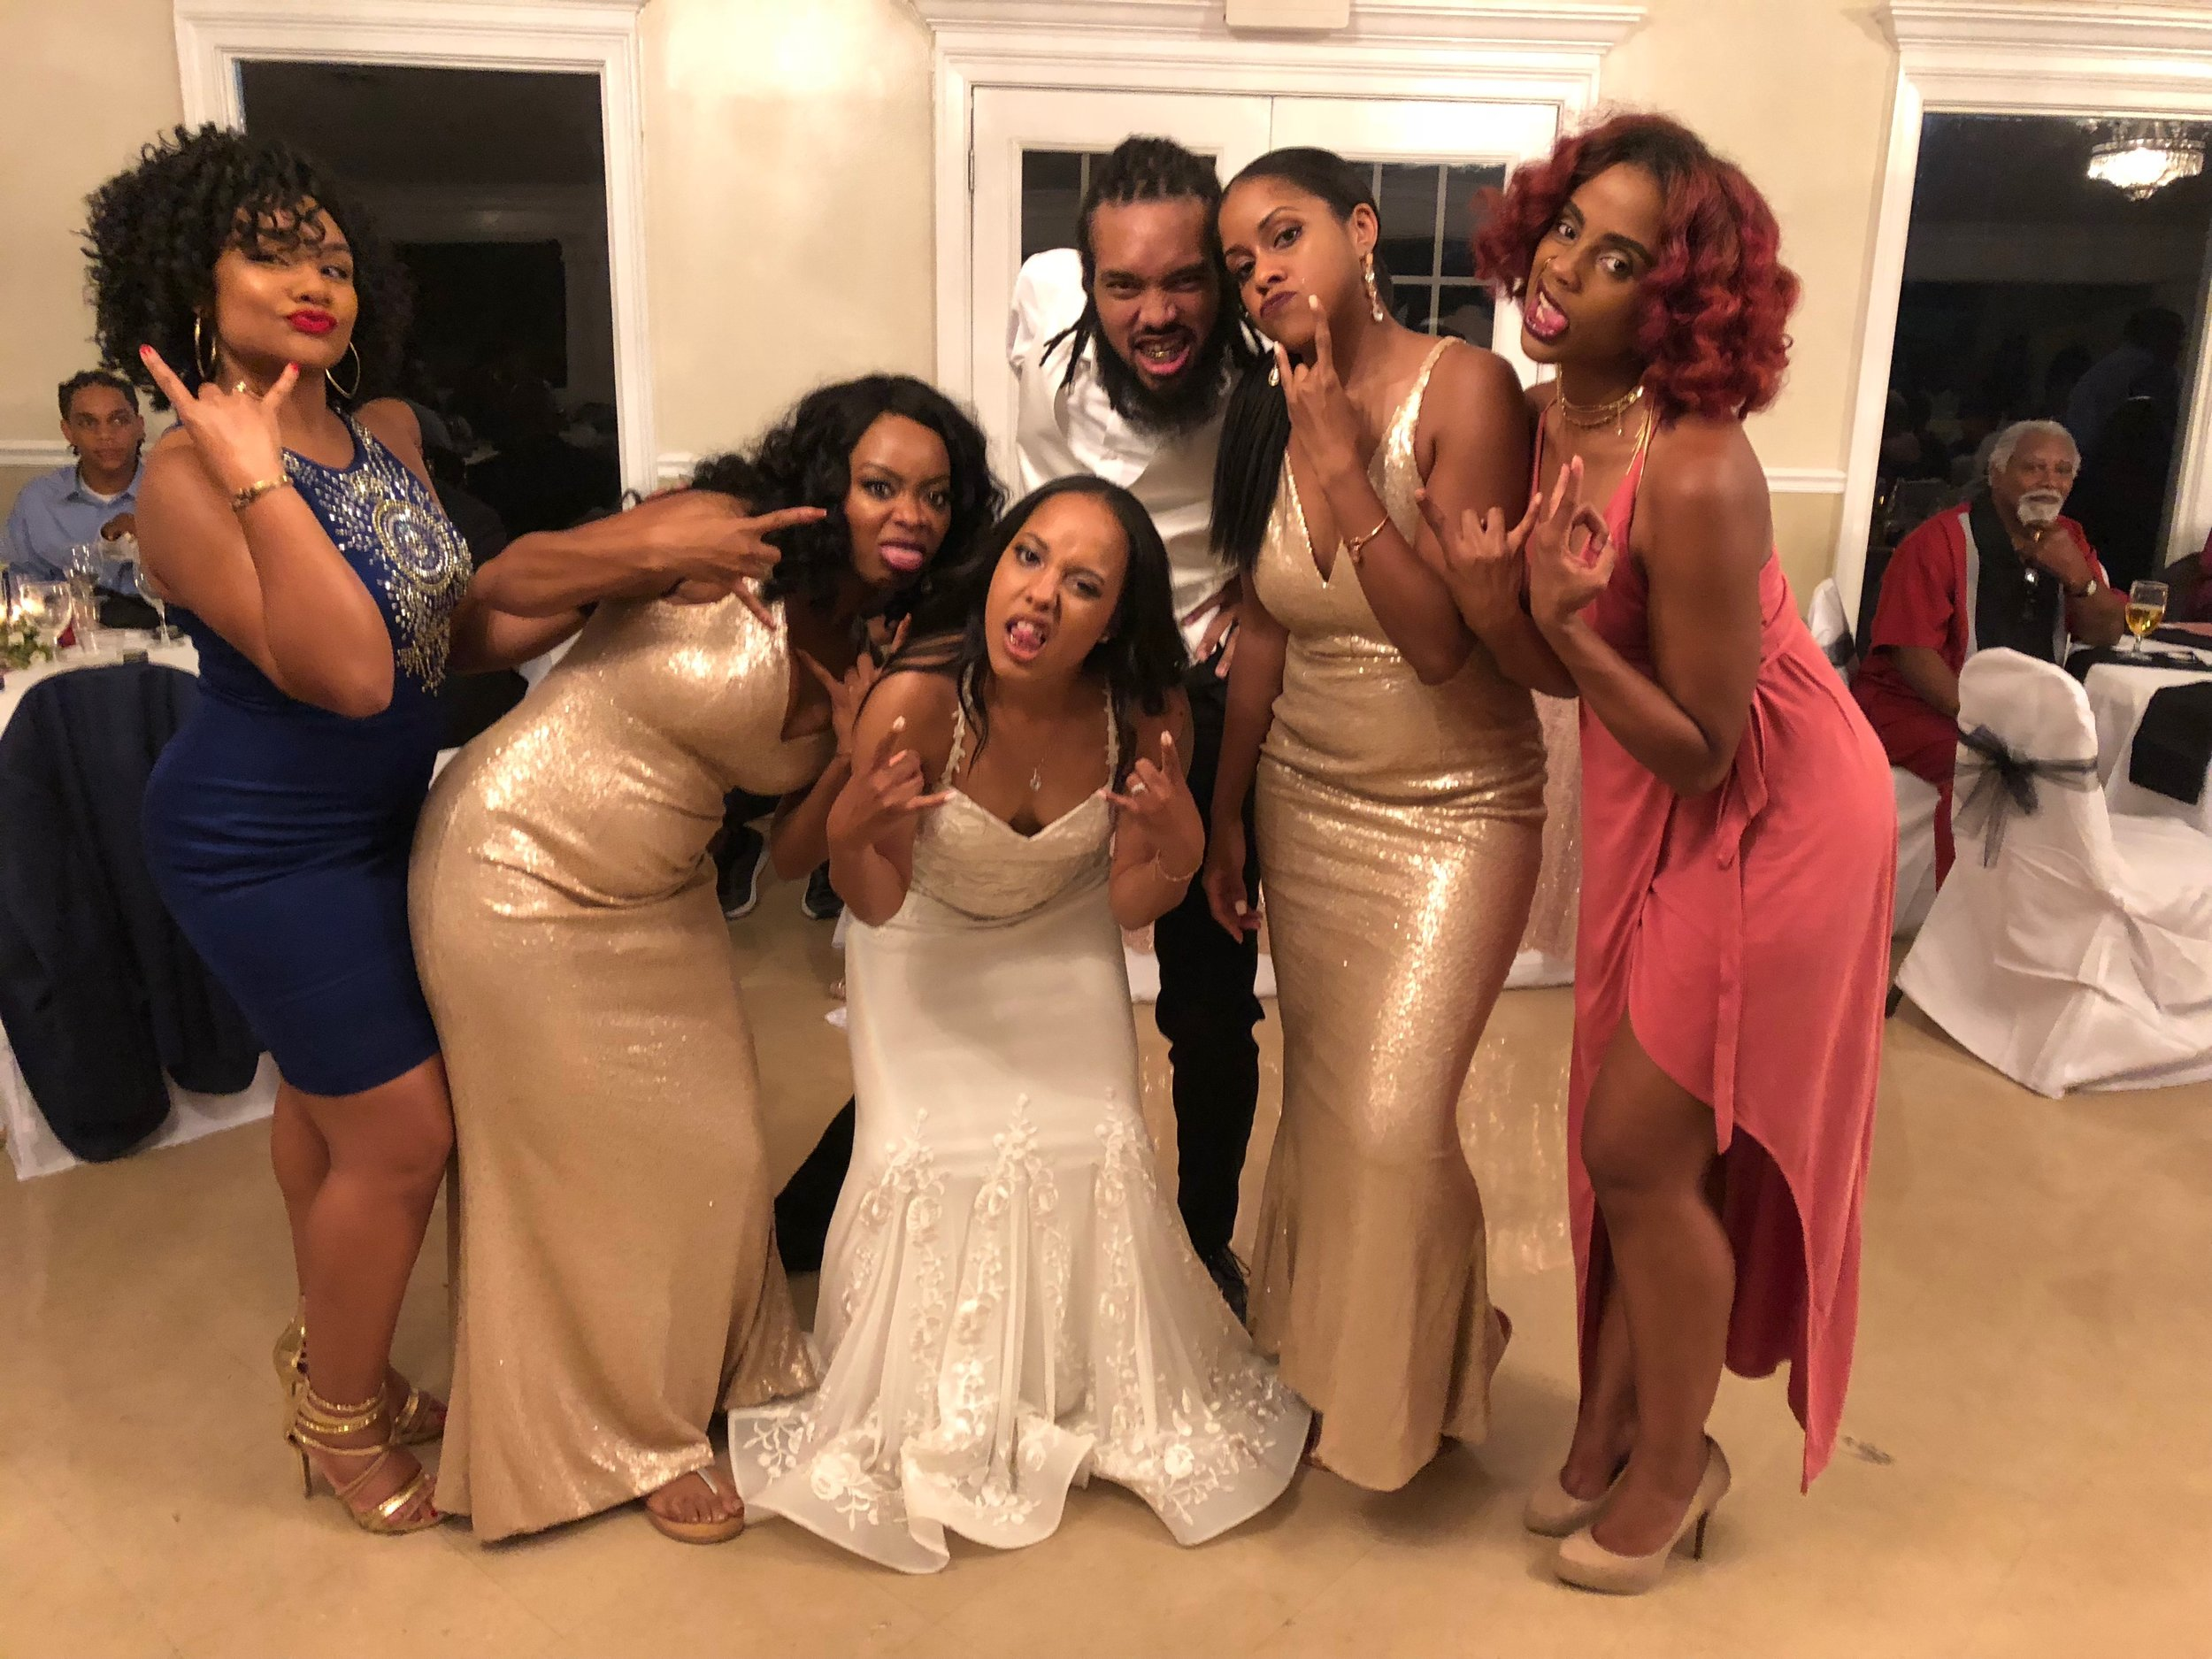 Obligatory TX pic. And D jumped in! I didn't get a good pic but the bride & groom had grills on for part of the reception. LOL. D is showing his off here.